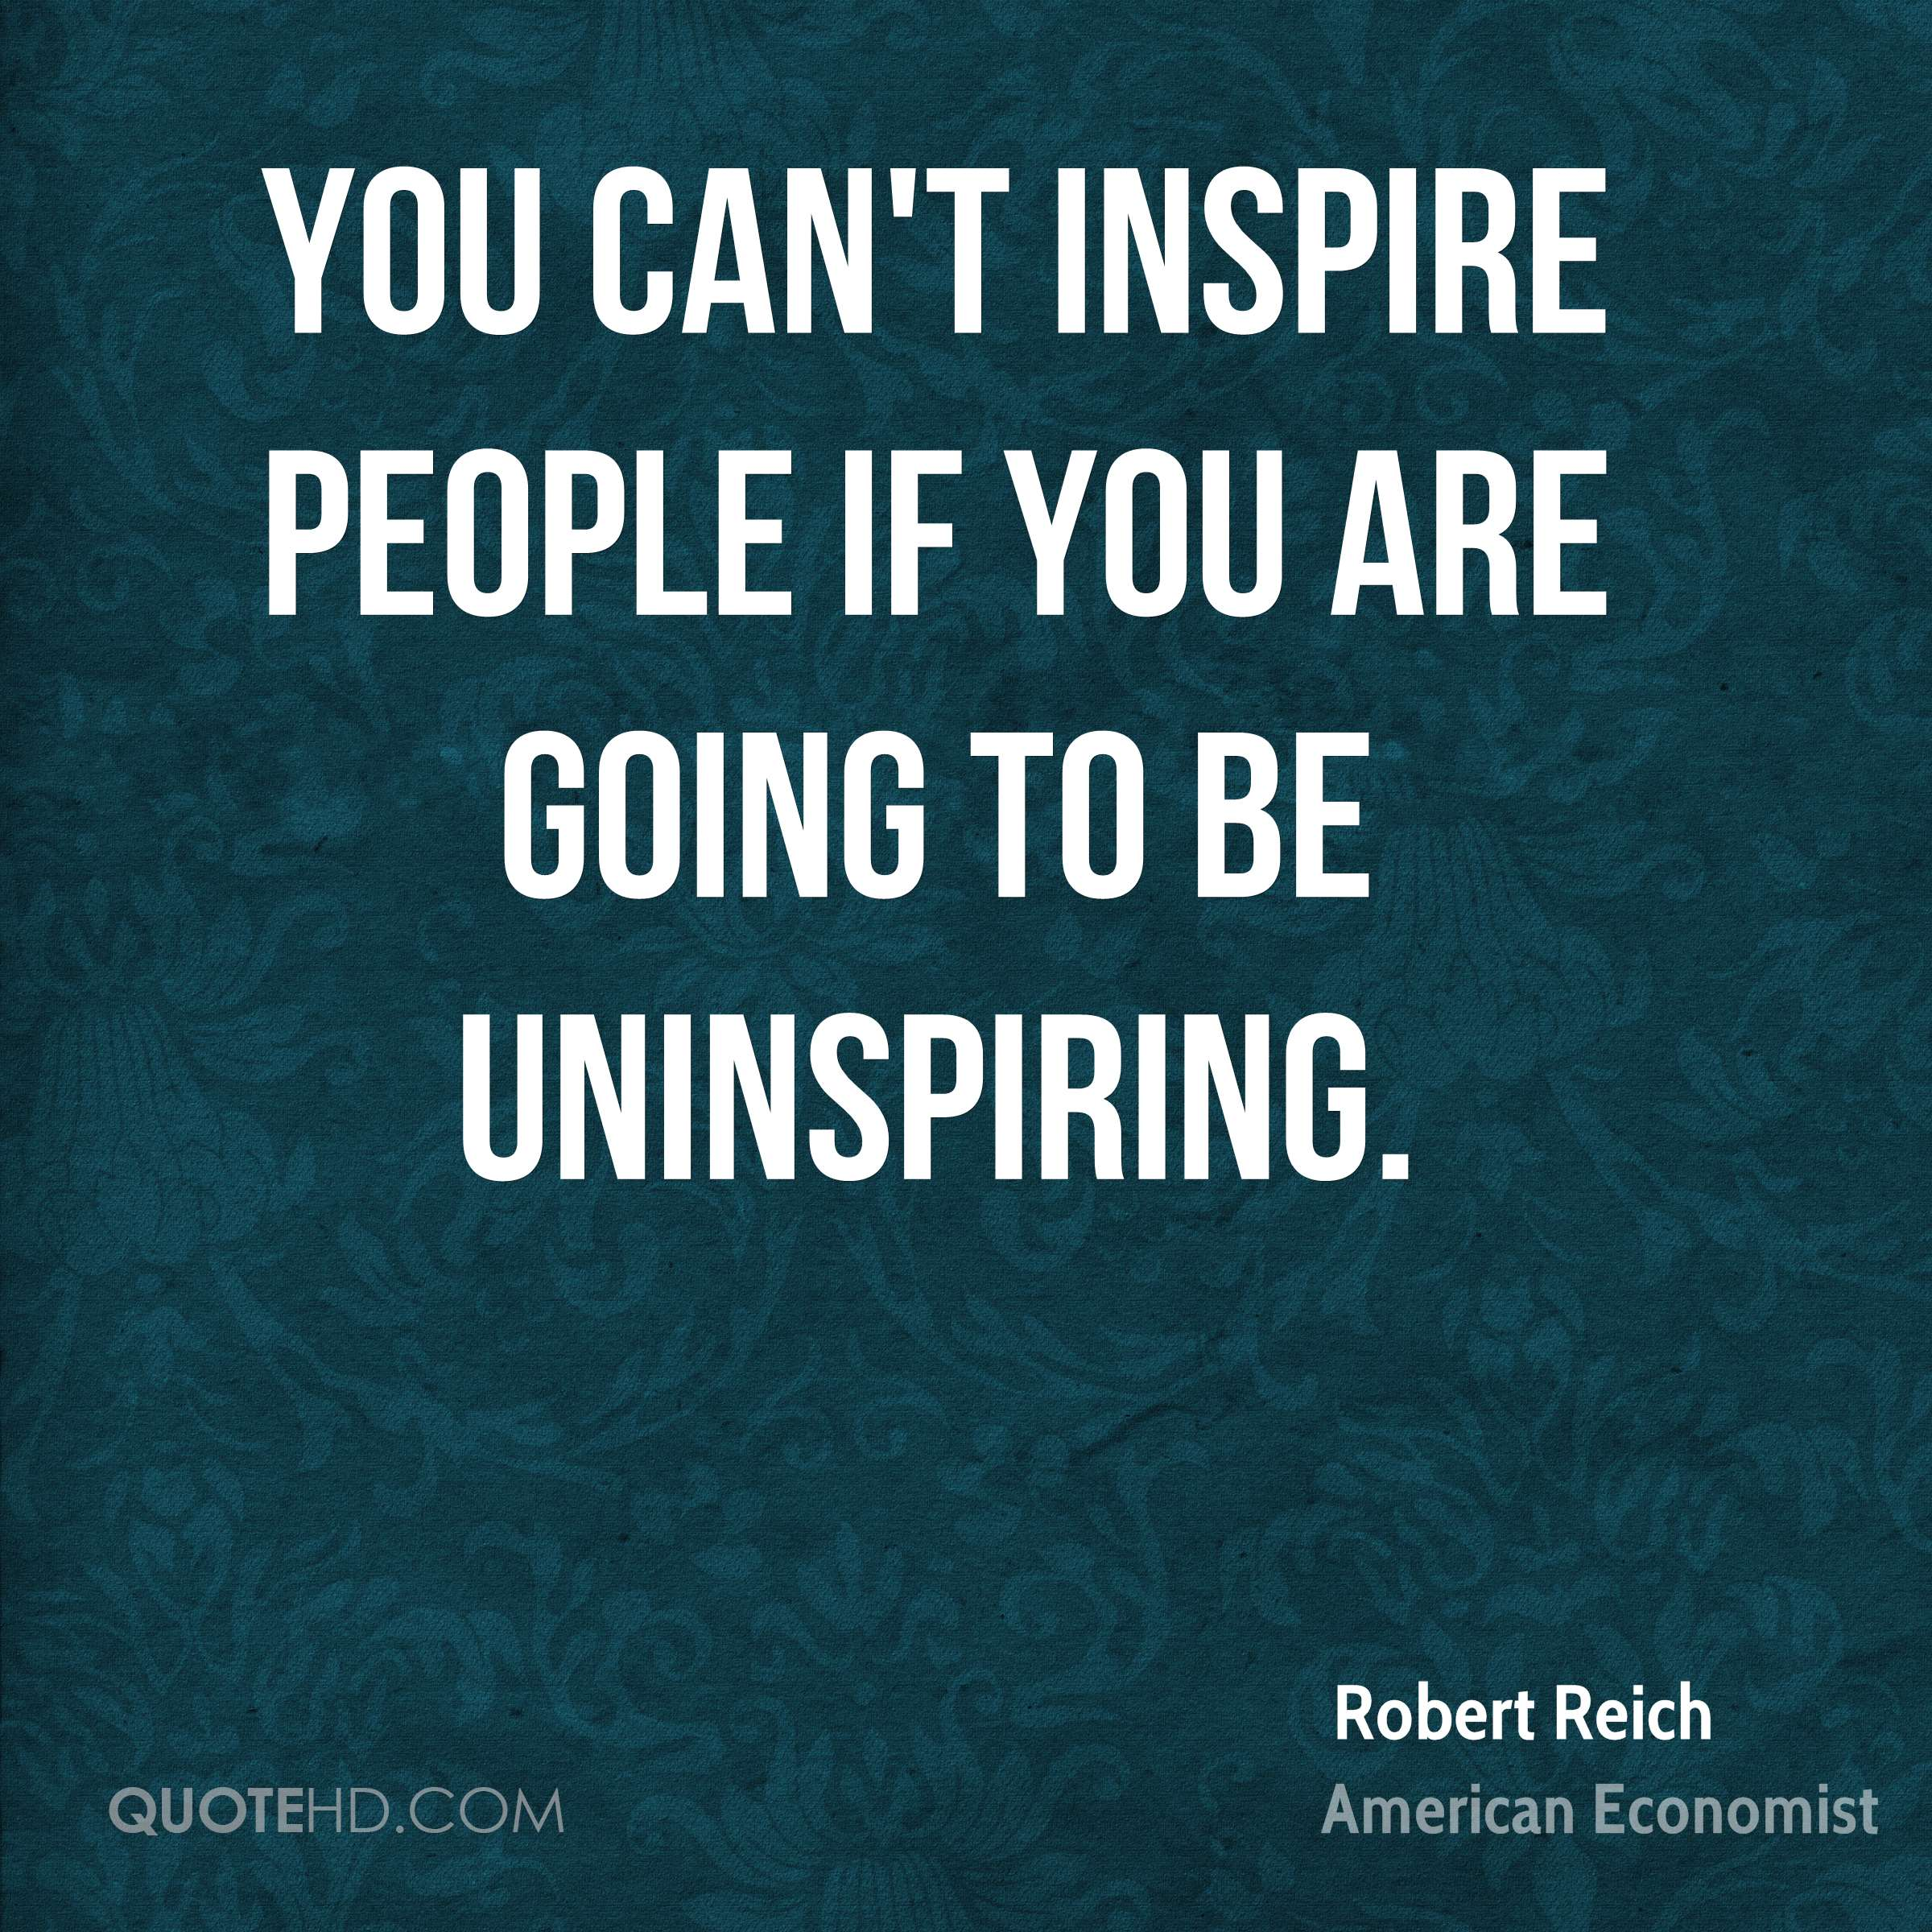 You can't inspire people if you are going to be uninspiring.